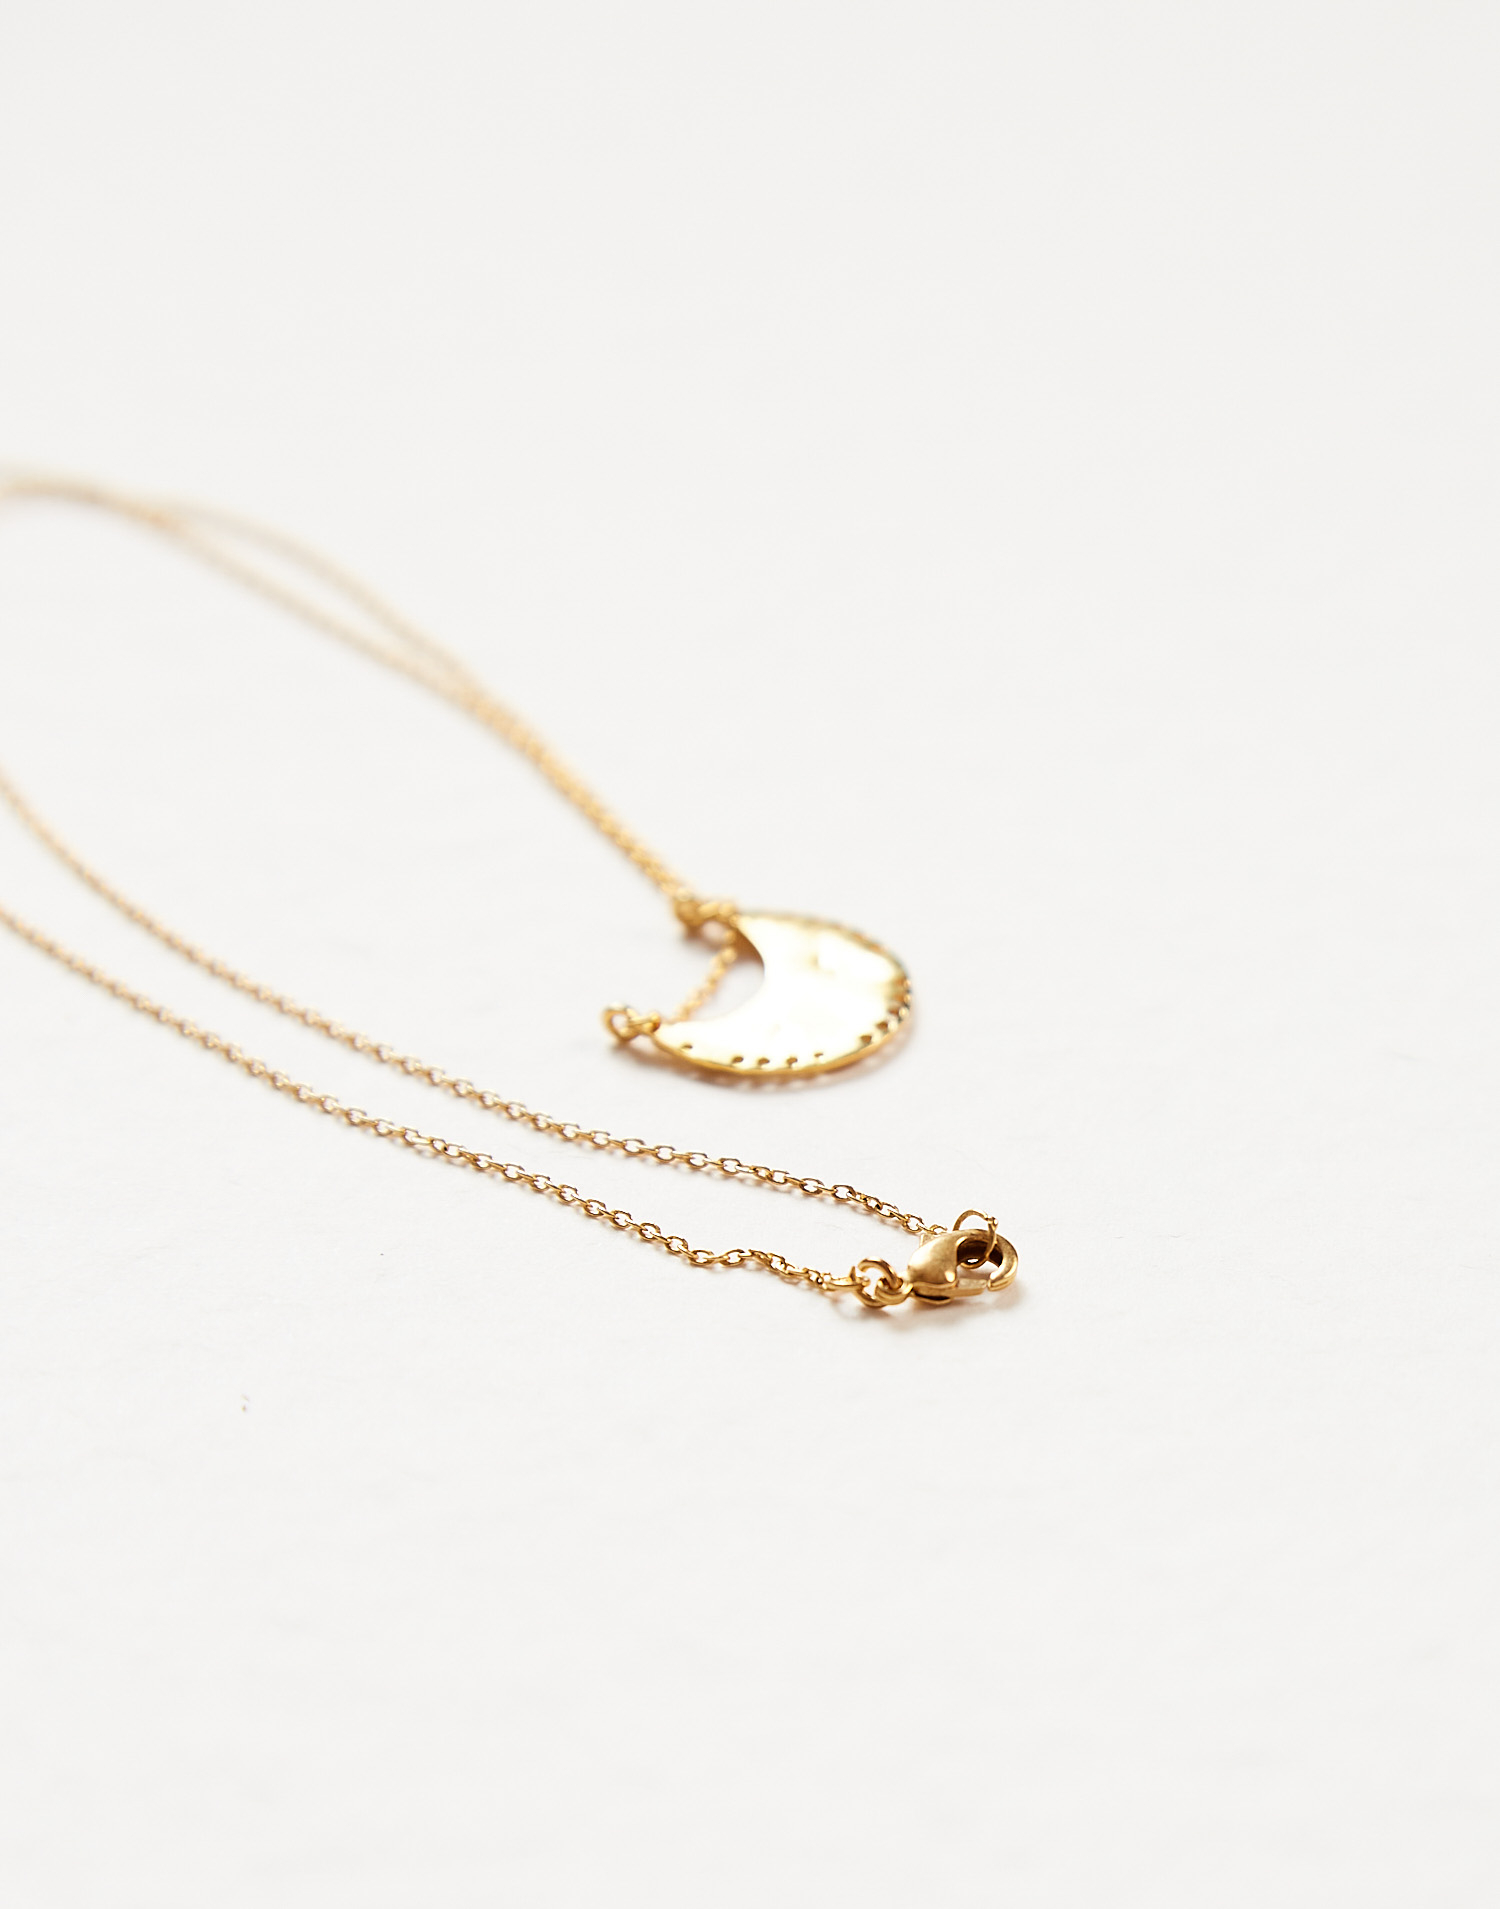 Gold plated half moon pendant necklace